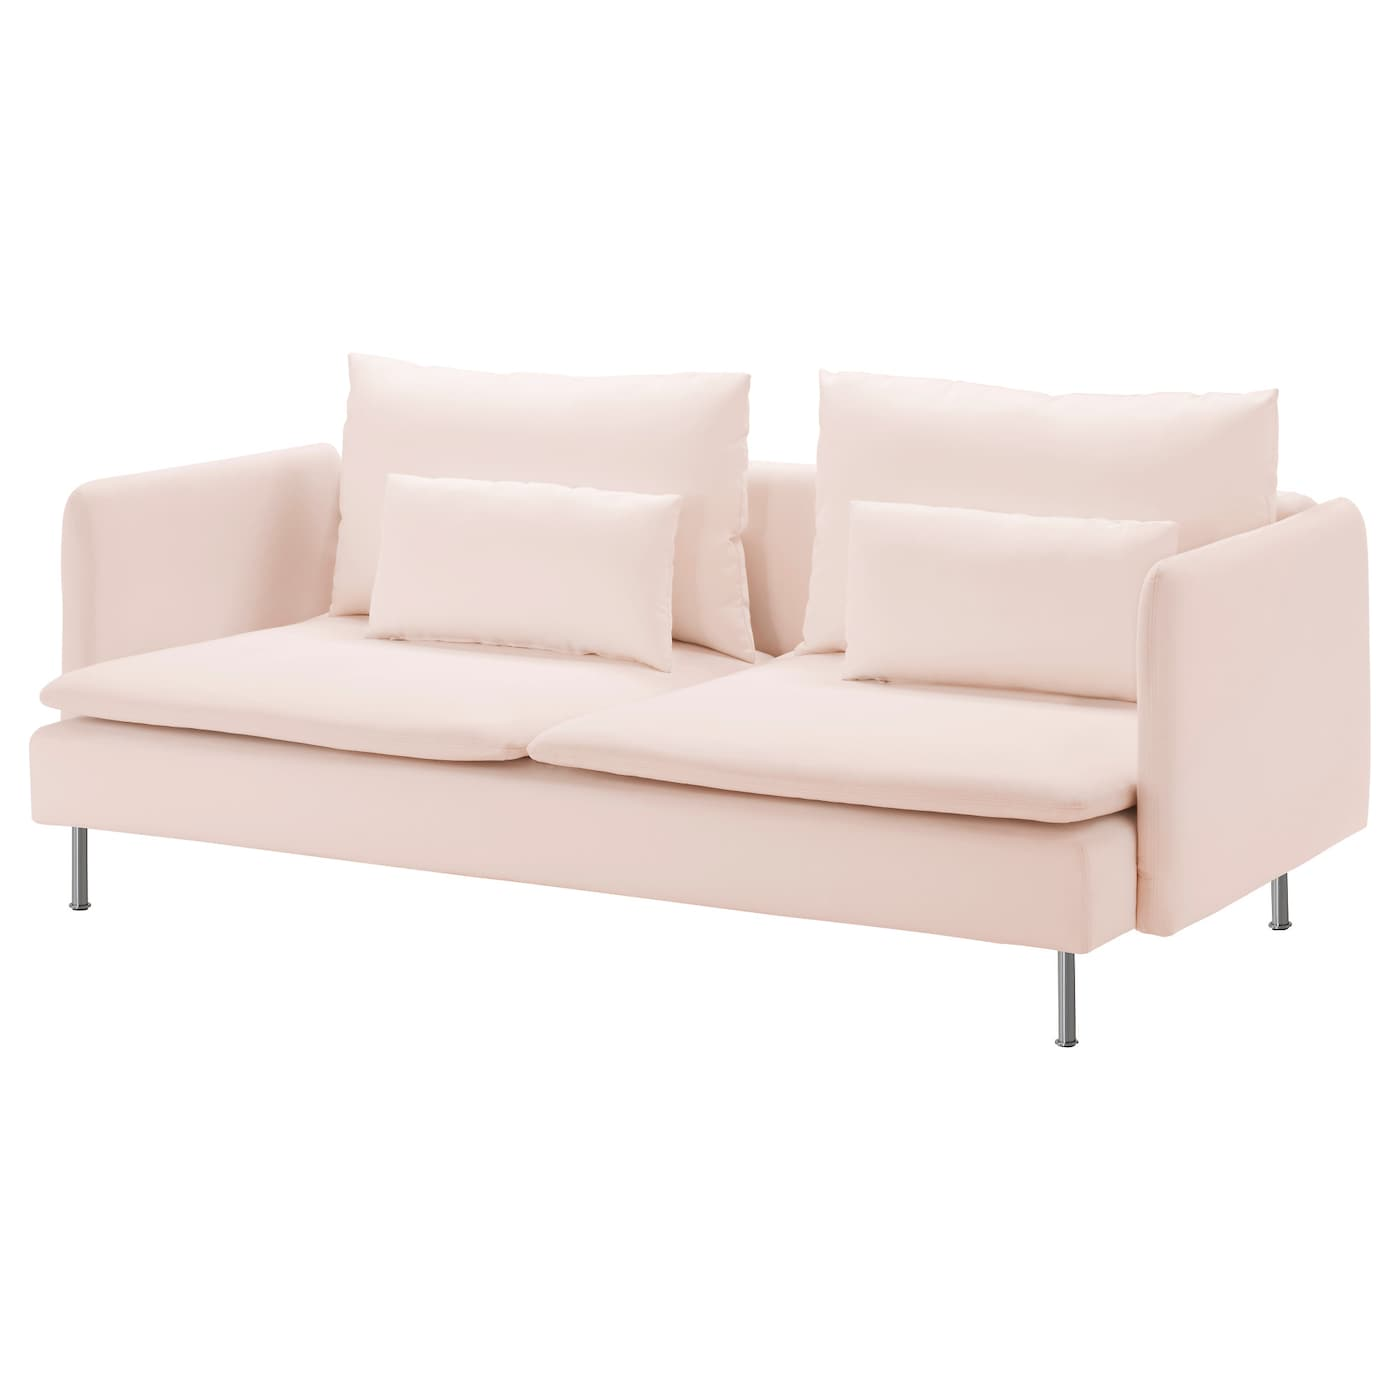 S derhamn three seat sofa samsta light pink ikea for Sofa jugendzimmer ikea